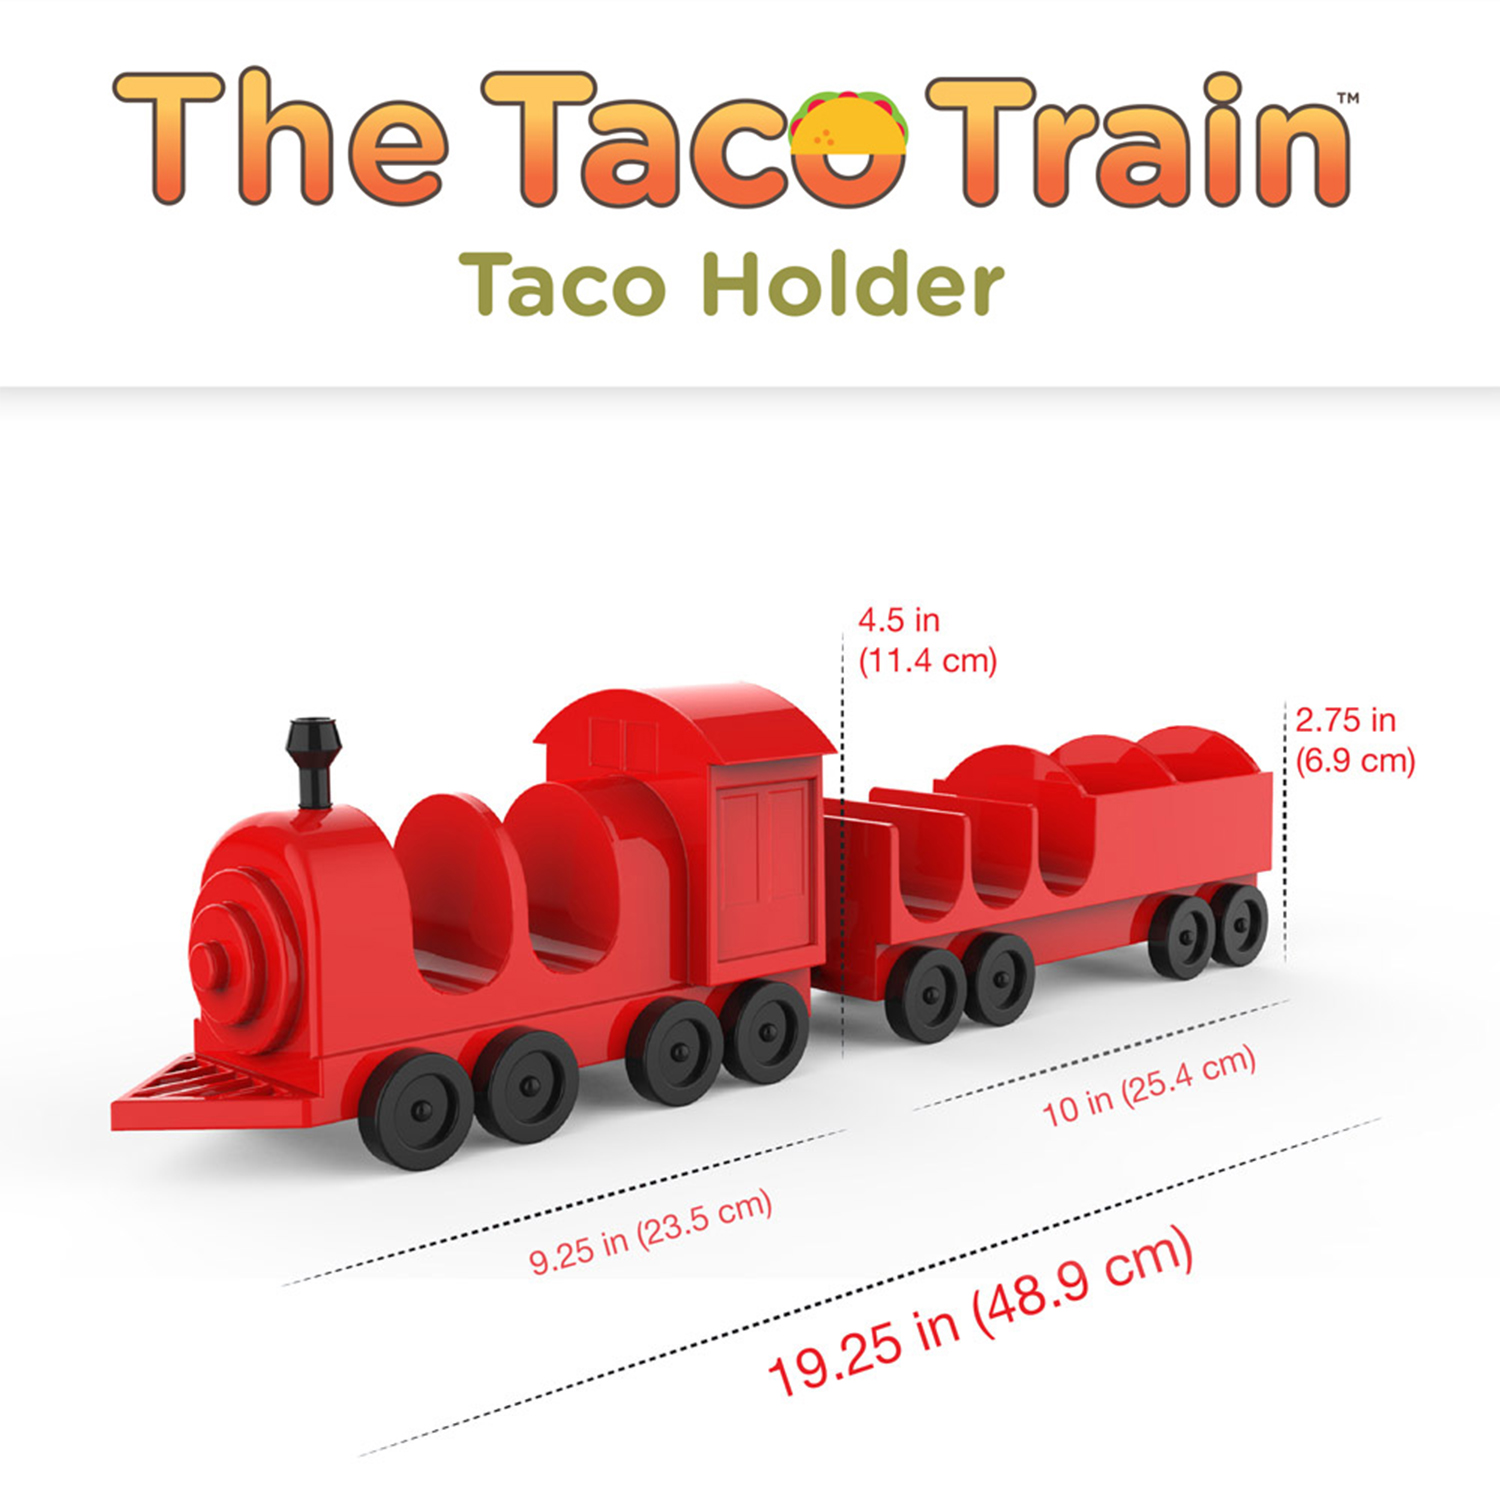 Hard or Soft Tacos and Sauces 5 Piece Taco Holder The Taco Train Taco Stand